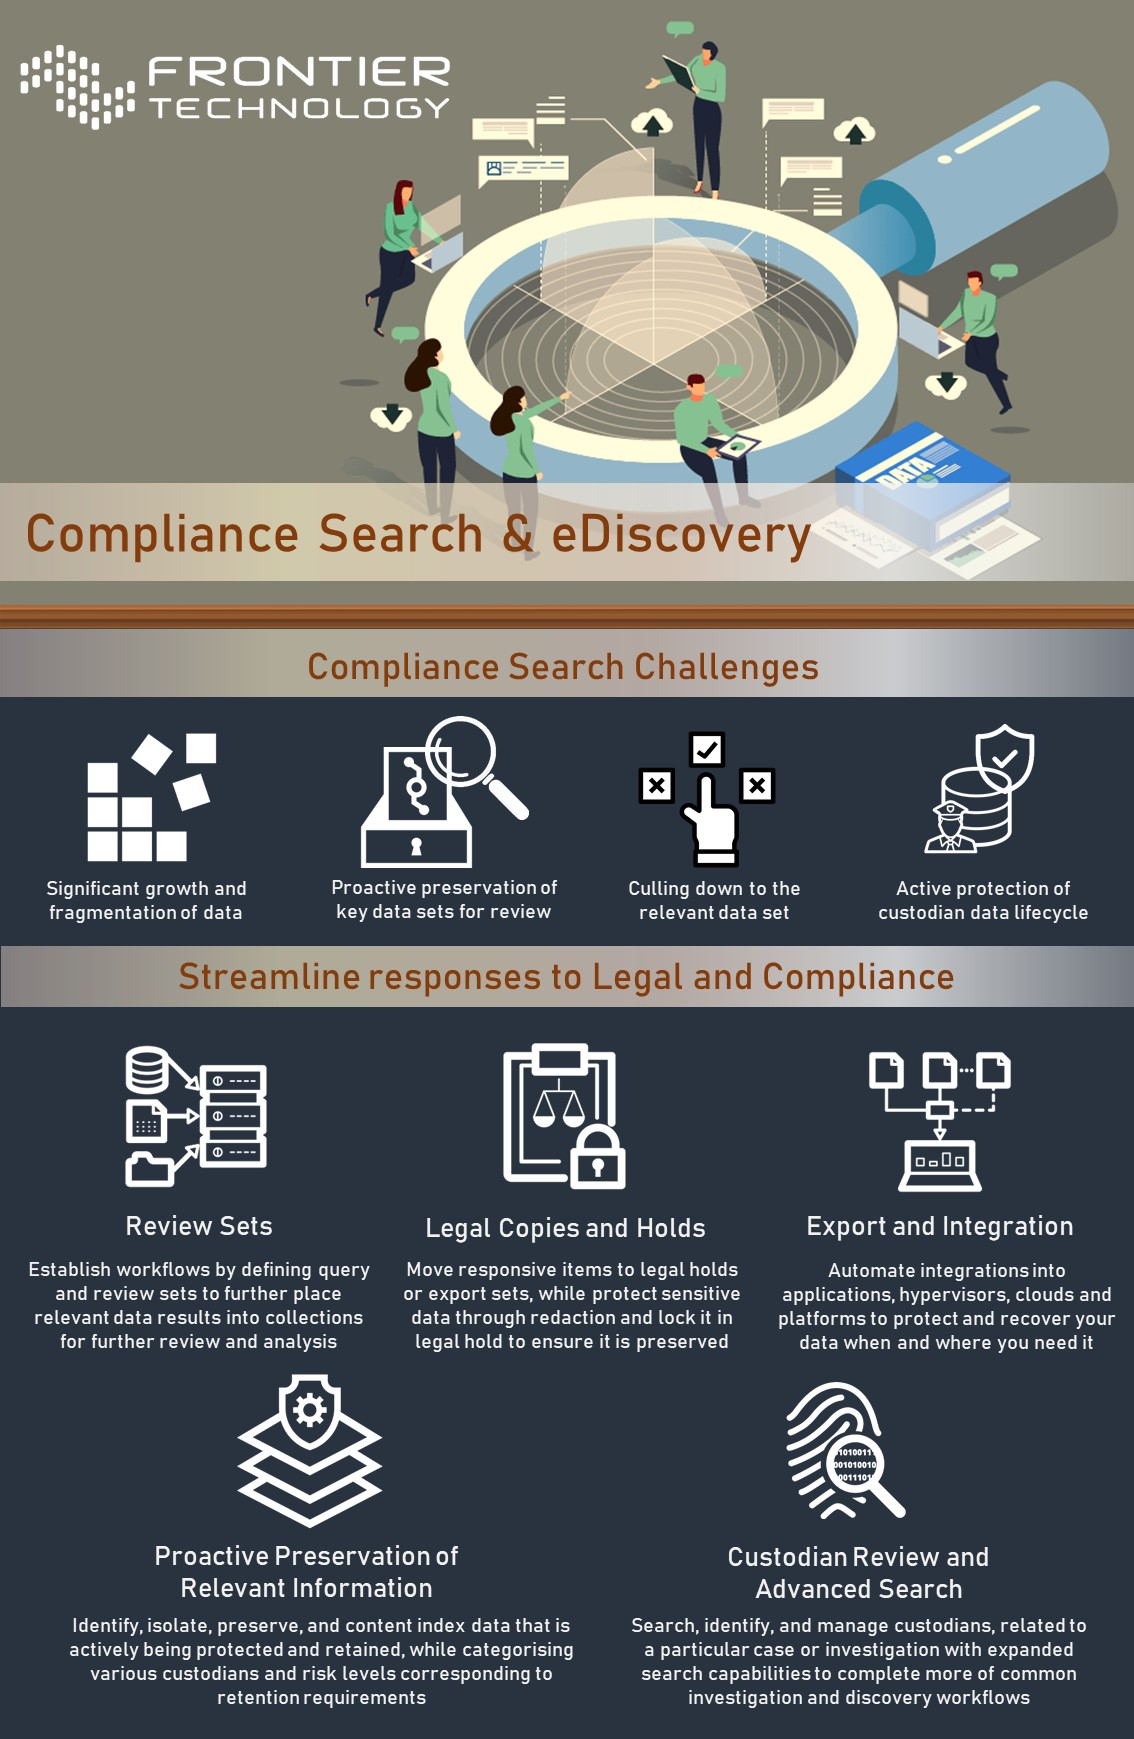 Compliance Search and eDiscovery